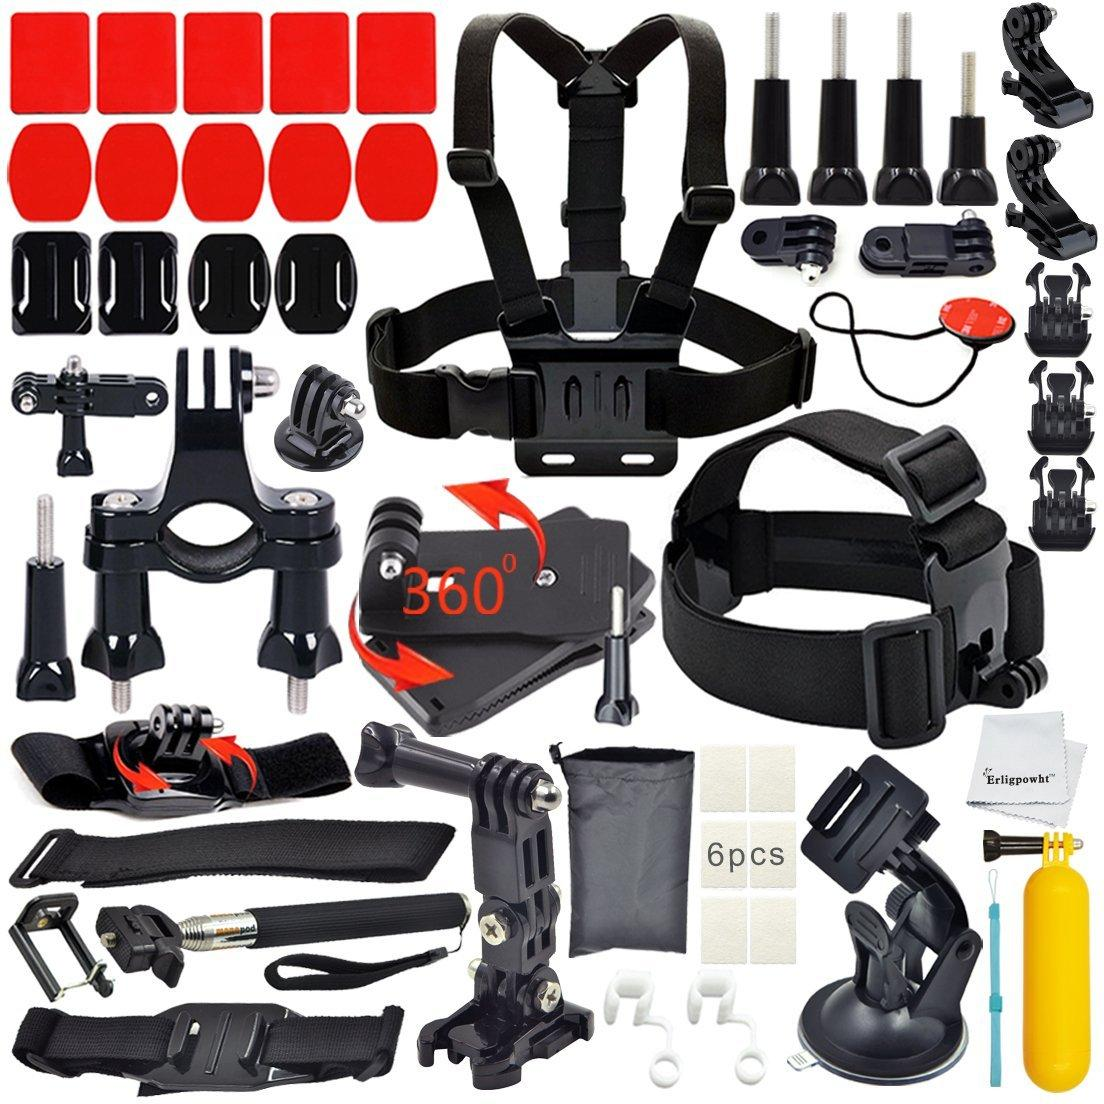 Erligpowht Accessories Bundle kit for GoPro Hero 4 3+ 3 2 1